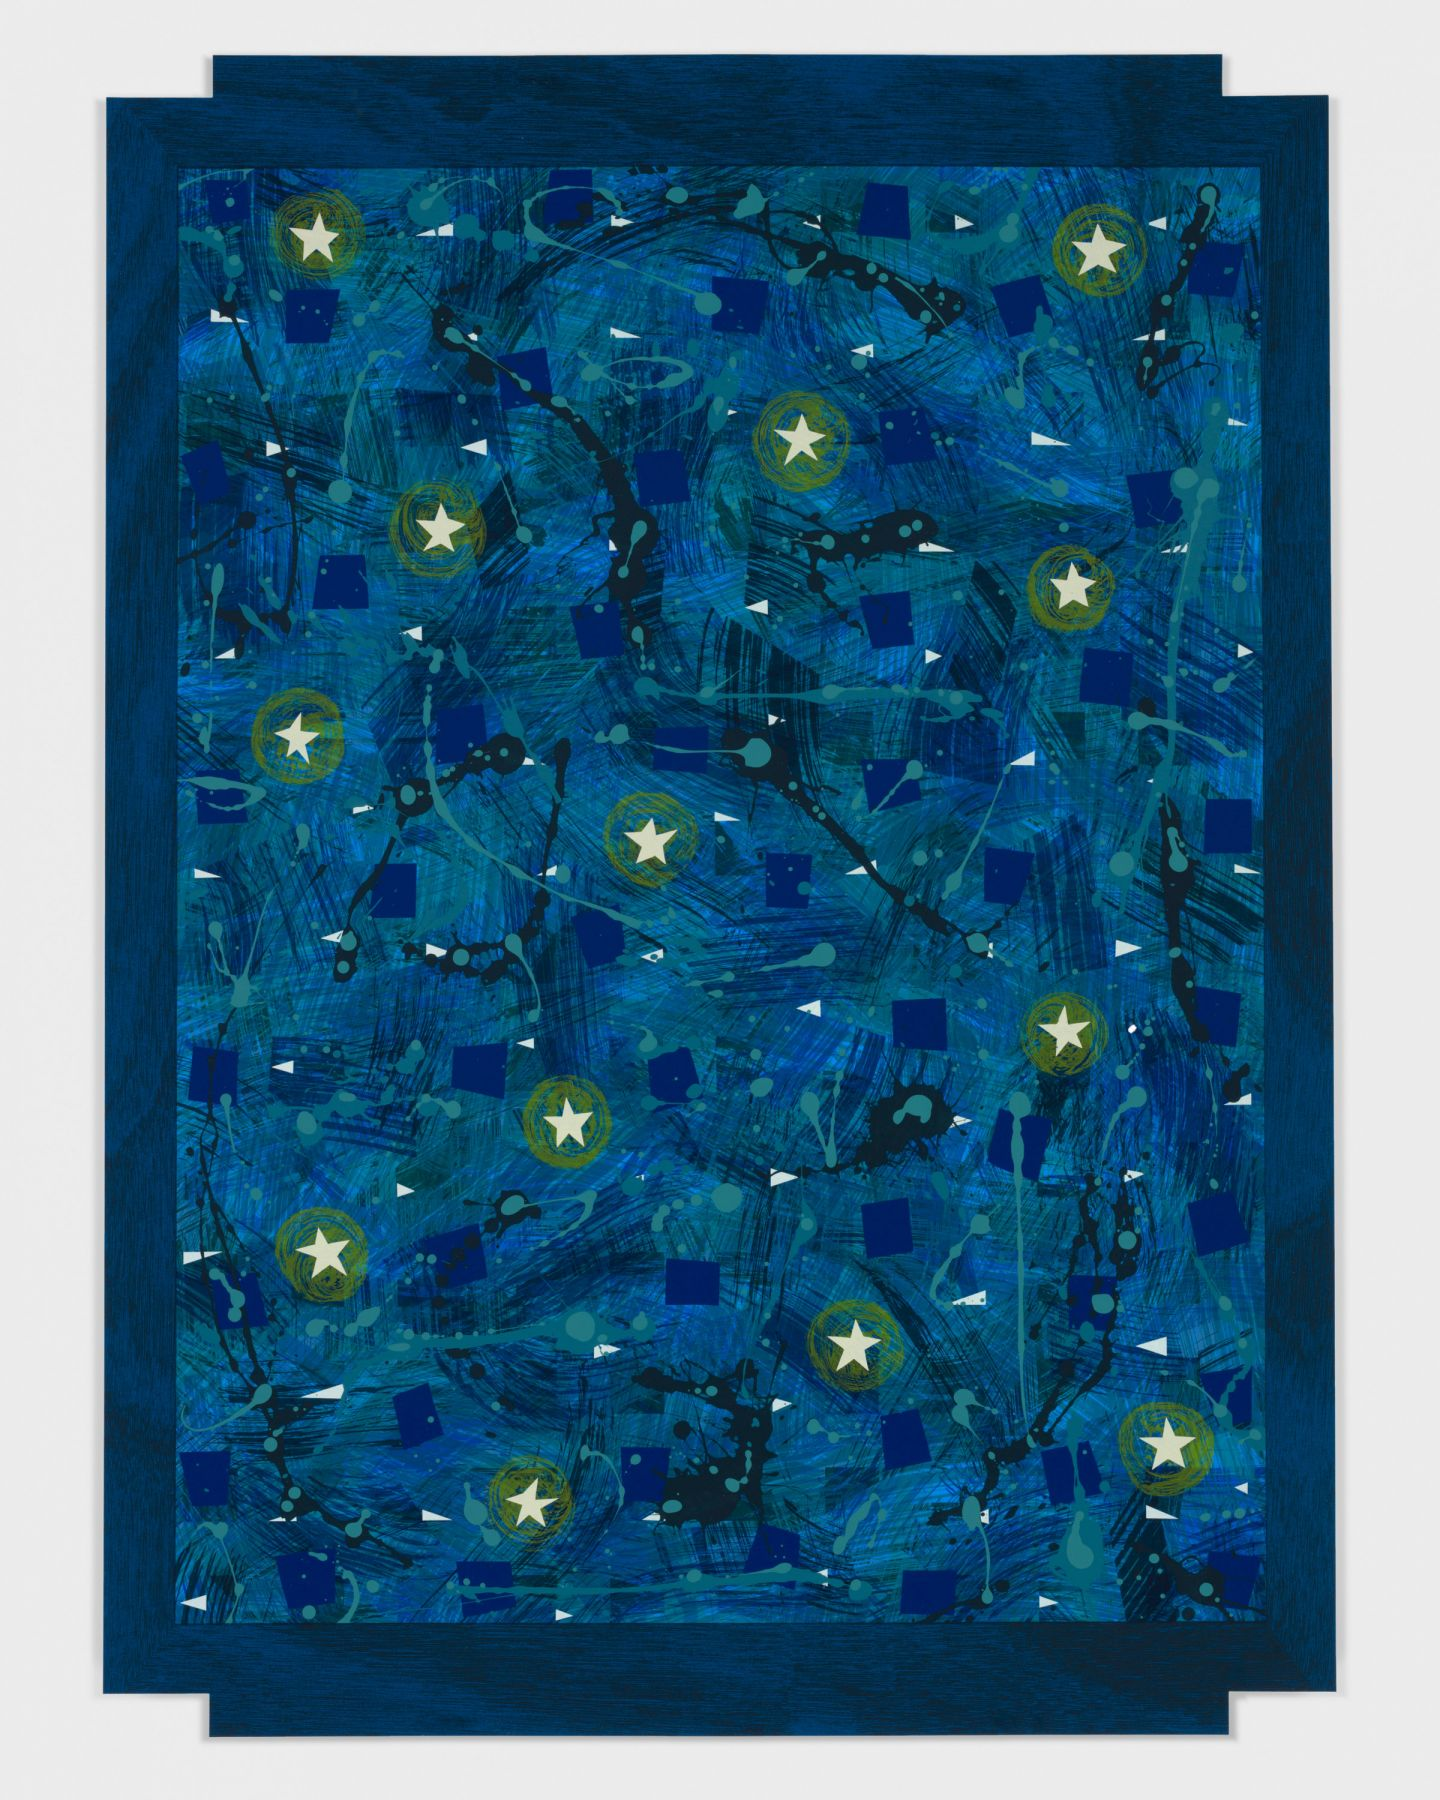 Starry Sky,2018 Serigraph in 18 colors from hand painted films on Rising Museum board